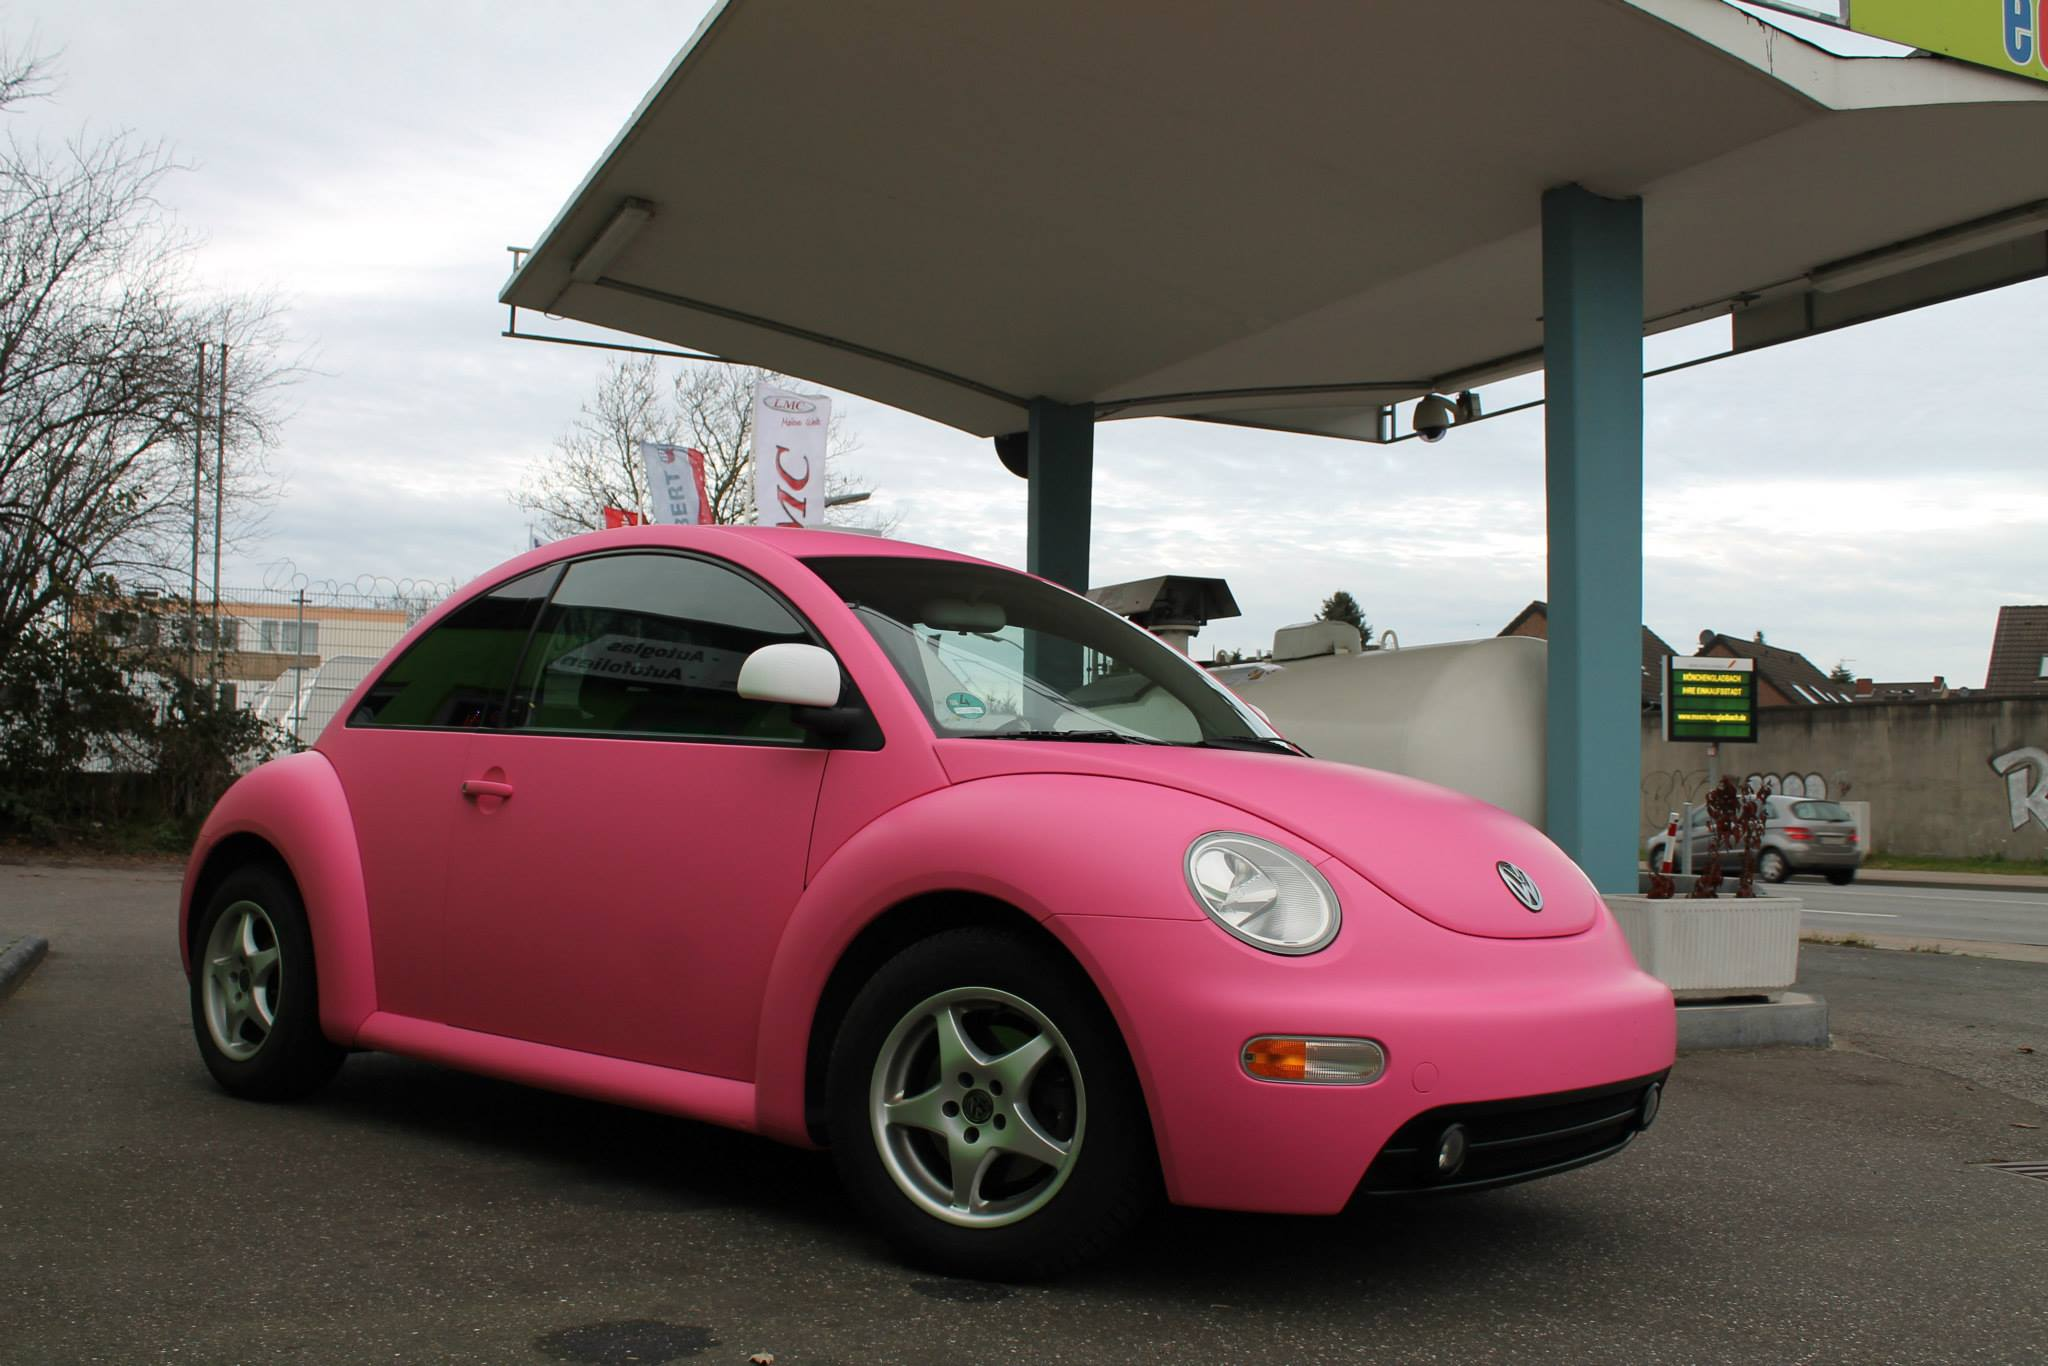 Pink Vw Beetle A Joyful Cliche Autoevolution